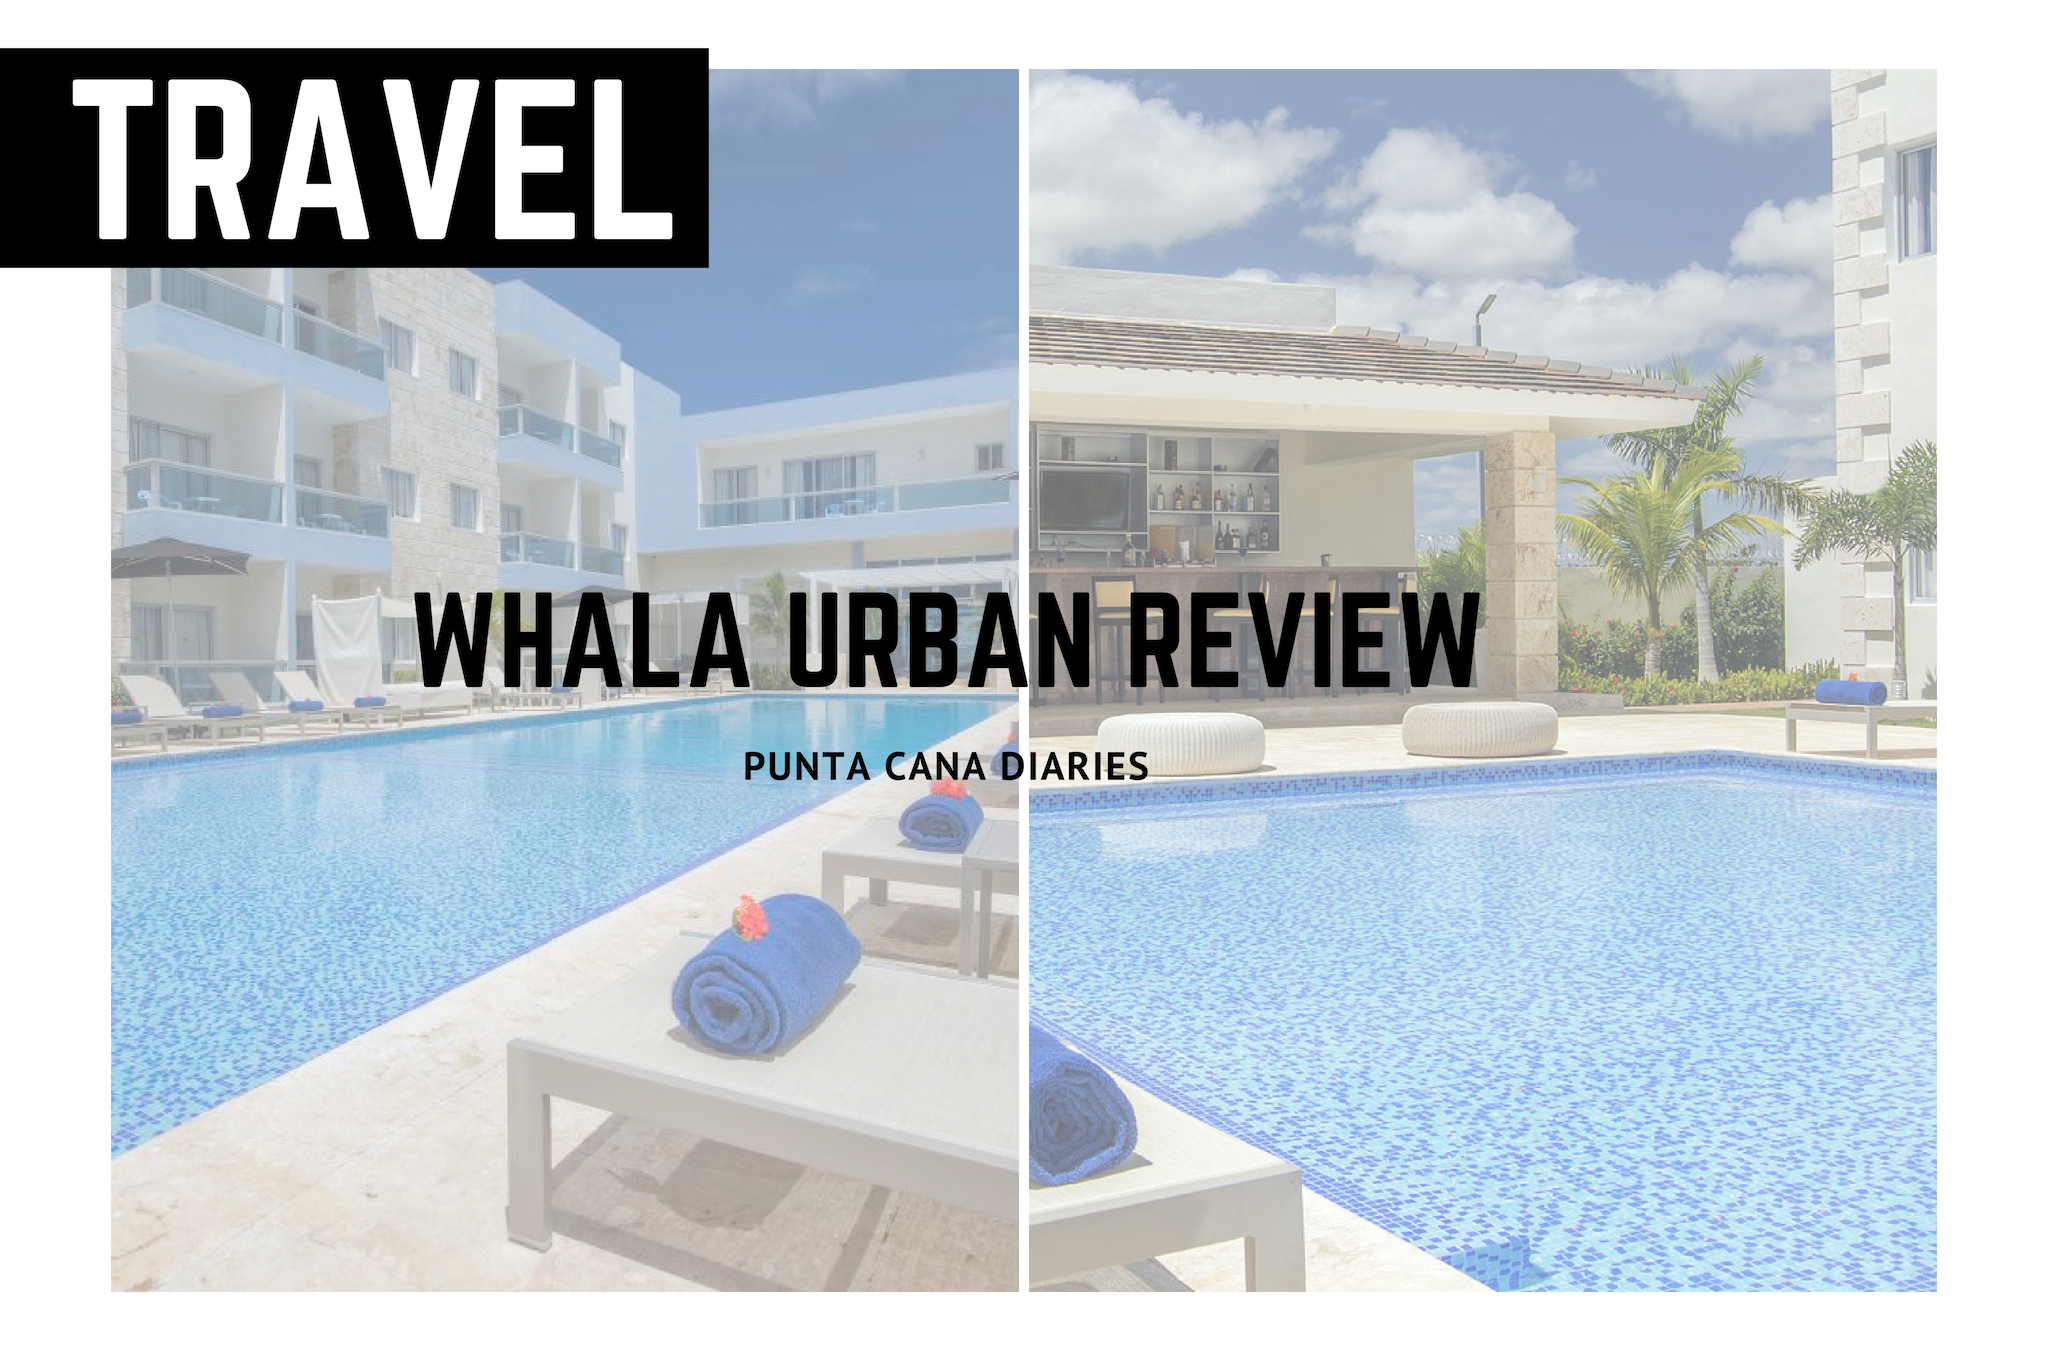 whala urban review punta cana hotel